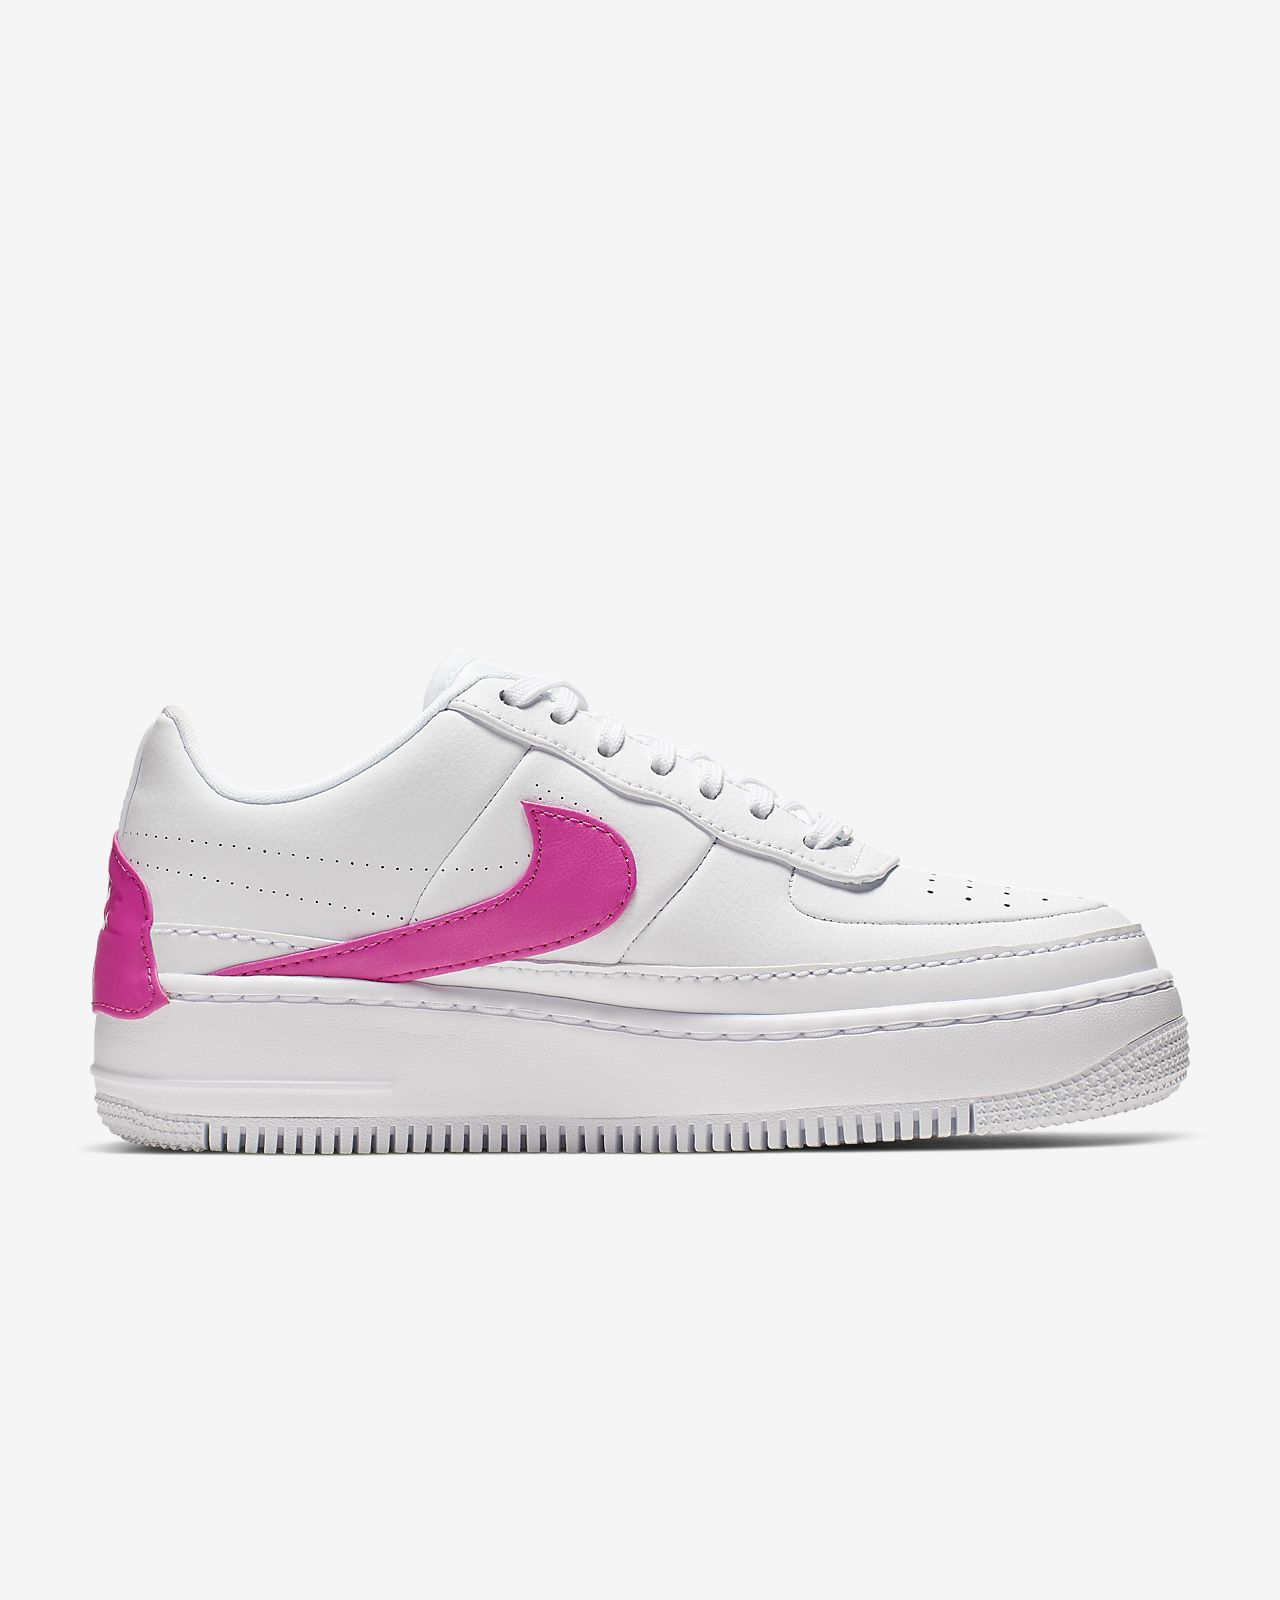 fa0ea3e46d4bc6 Low Resolution Nike Air Force 1 Jester XX Shoe Nike Air Force 1 Jester XX  Shoe